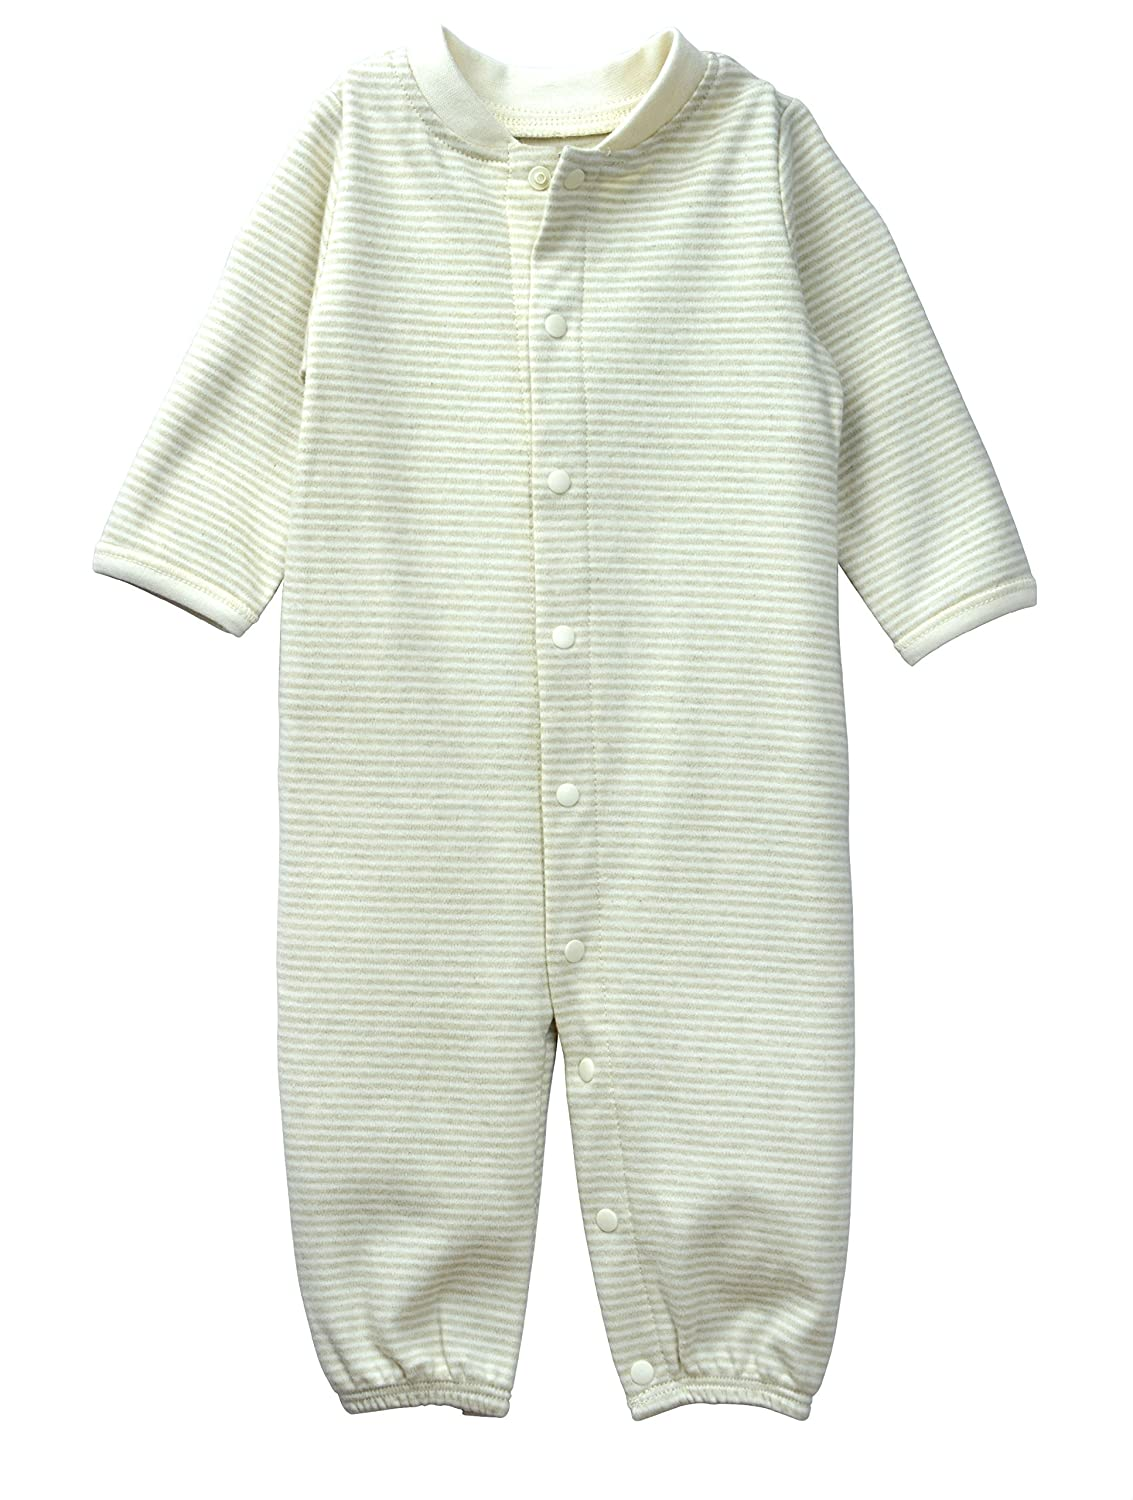 a66154bc9 Amazon.com  DorDor   GorGor ORGANIC Long Sleeve Pajamas